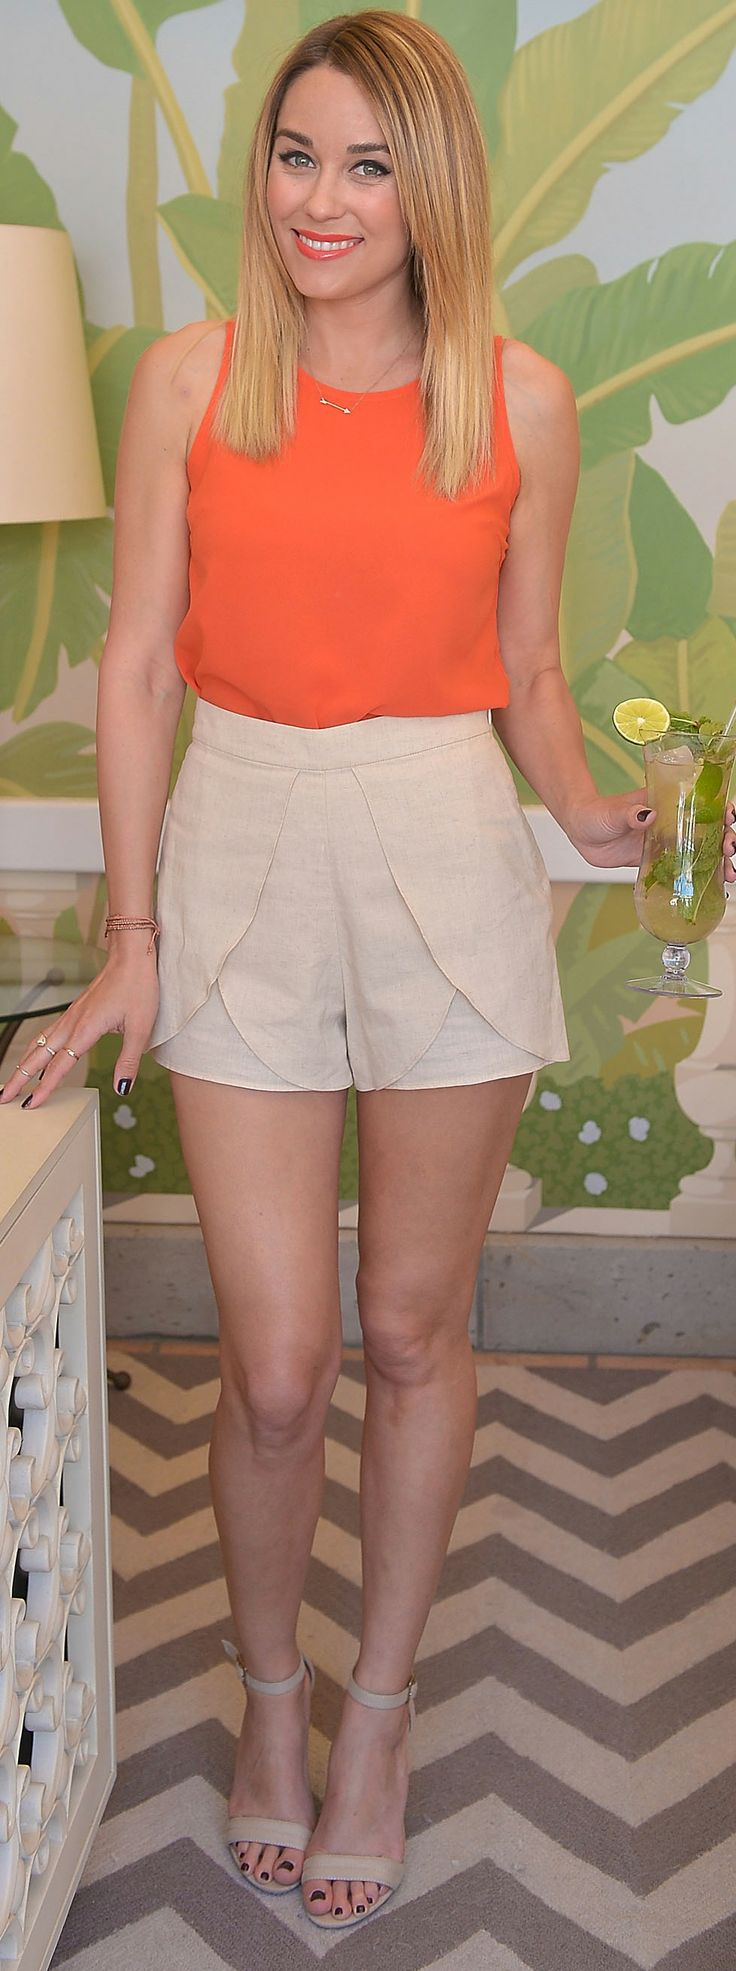 Tulip hemmed shorts. Fun update to classic khaki shorts.